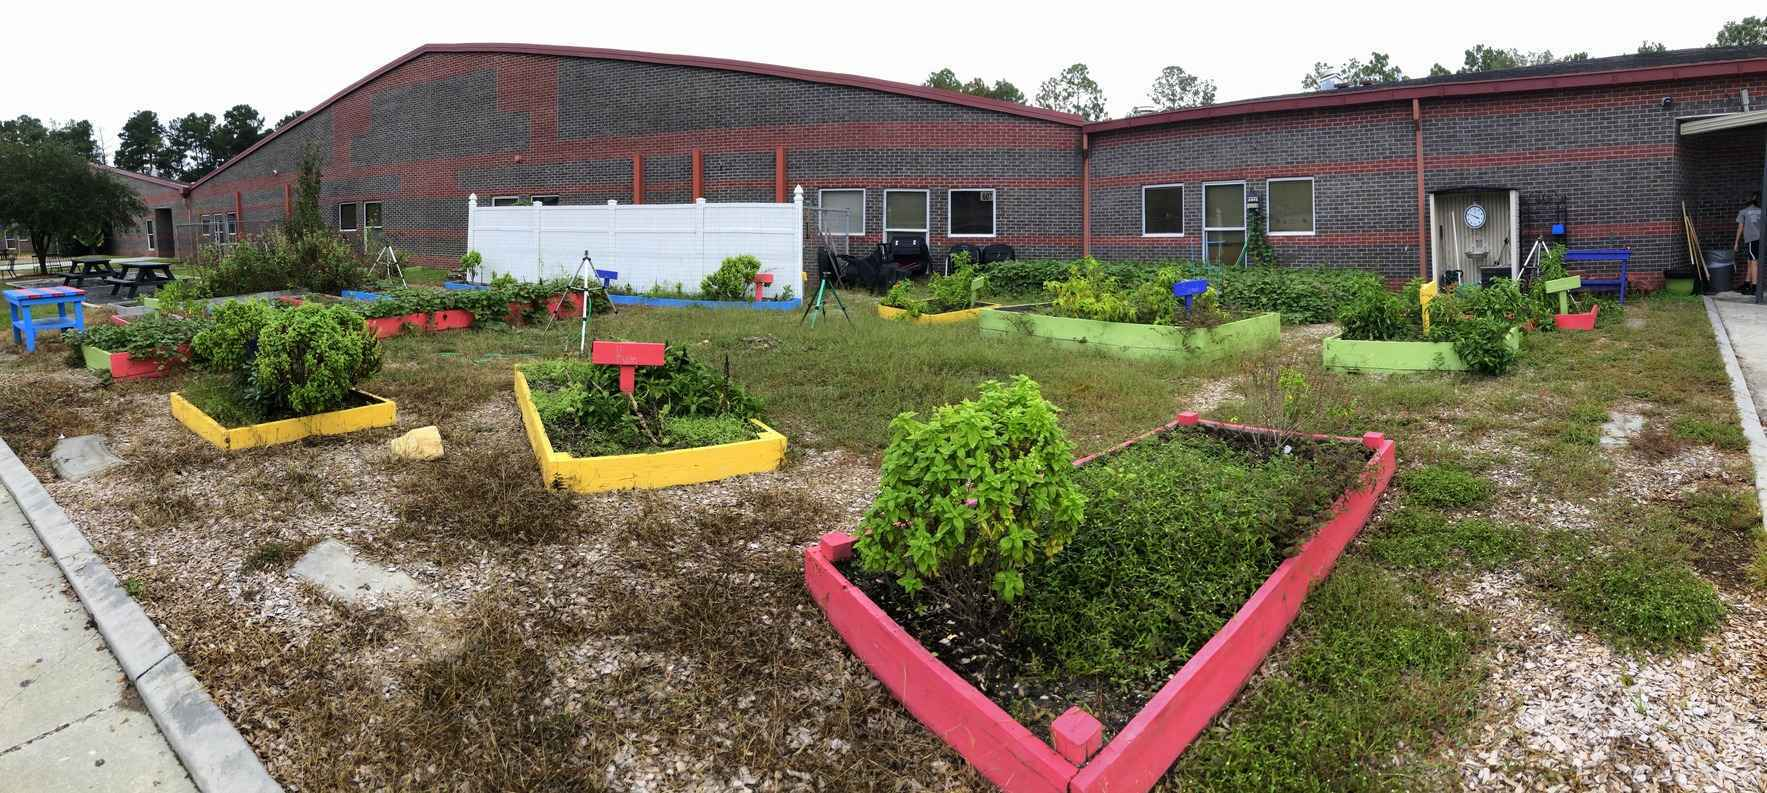 Our Katie's Krops Growers at DuBose Need Our Help to Rebuild Their Garden! image